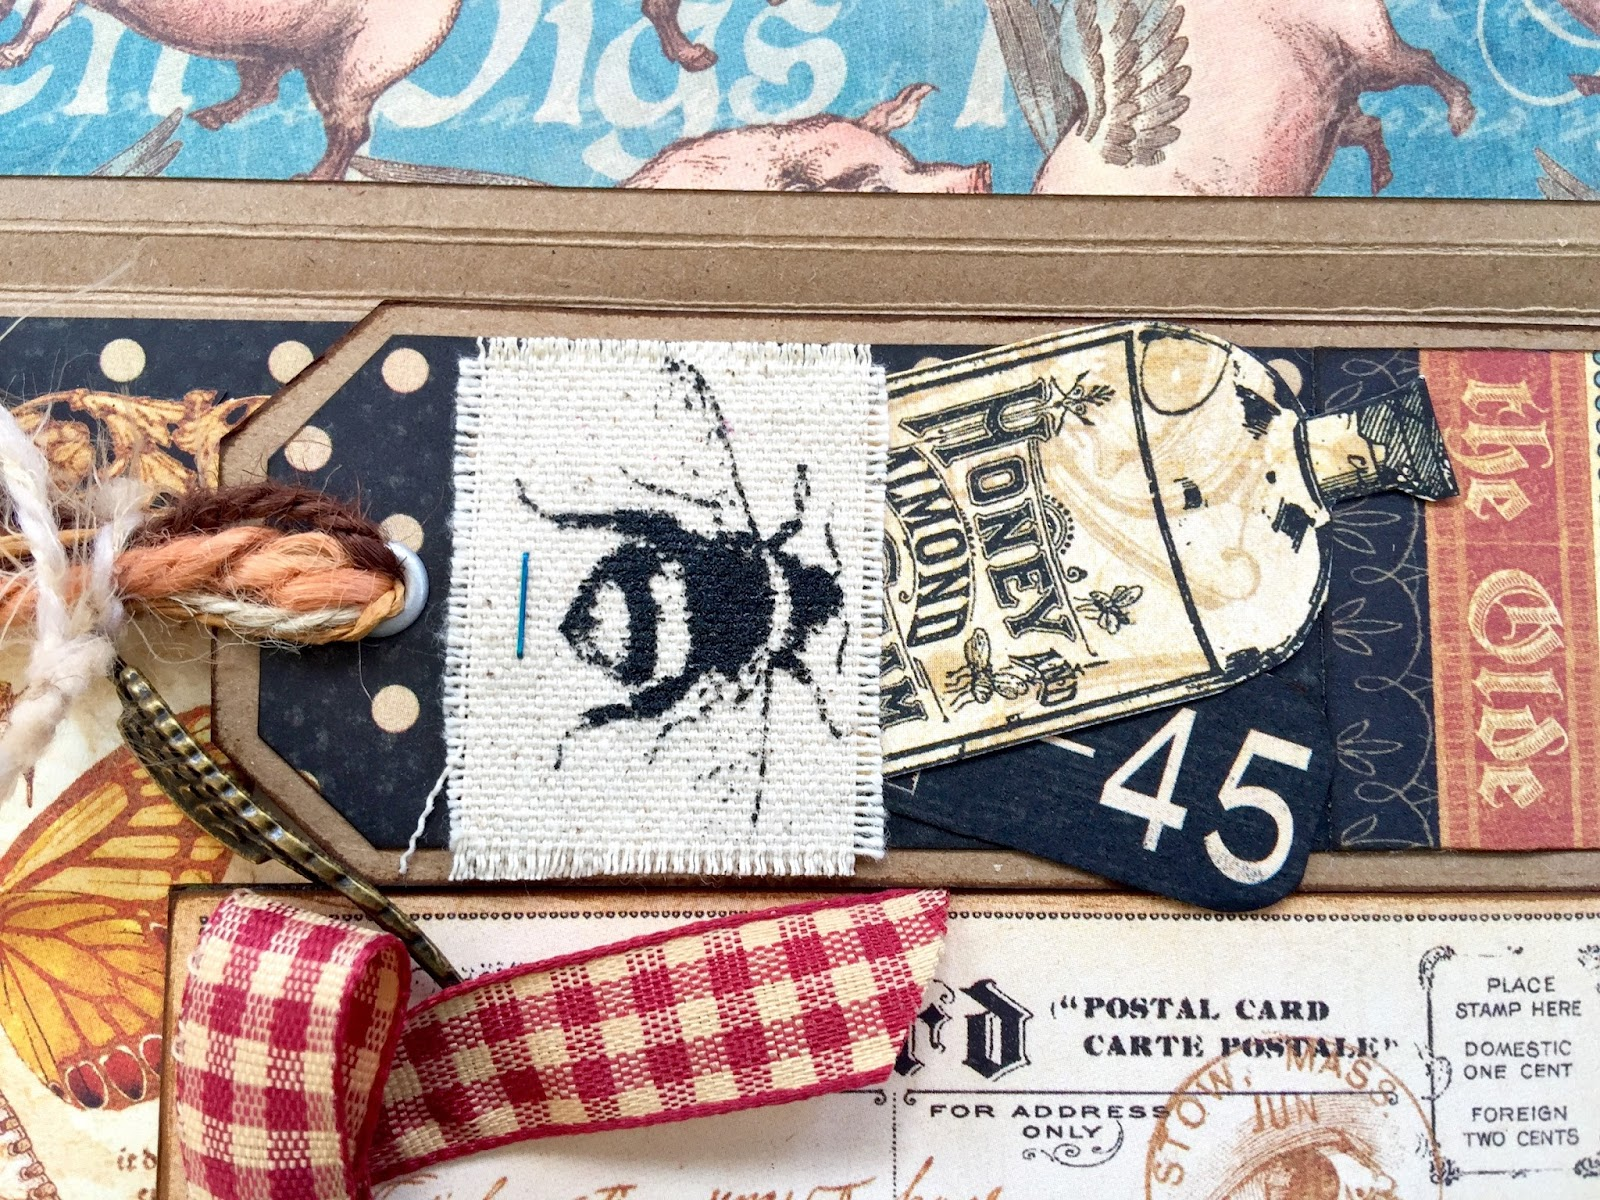 Olde Curiosity Shoppe Flip Flap Mini Album by Marina Blaukitchen Product by Graphic 45 photo 7.jpg